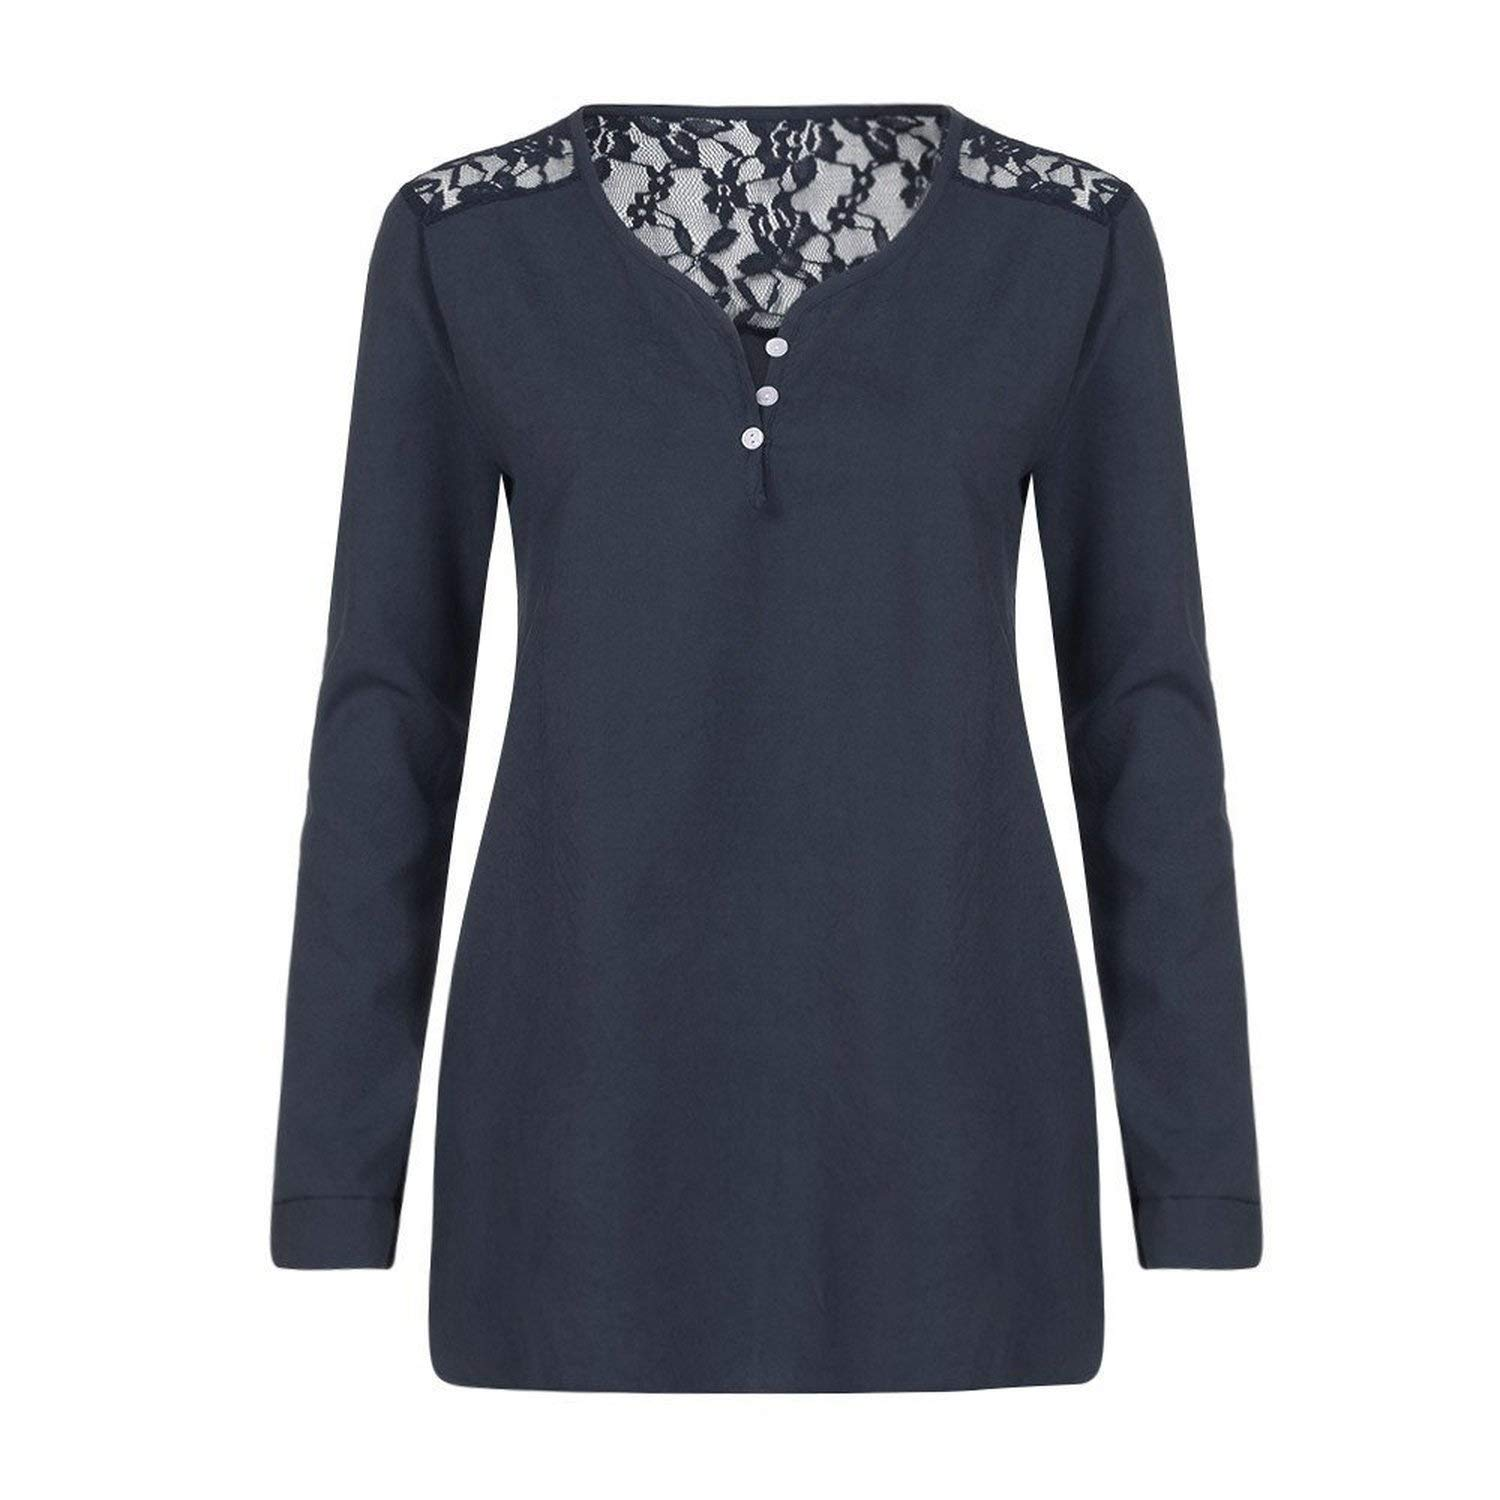 9b79e537a3 Get Quotations · GLORIA WILKINS Women Henley ShirtSexy Floral Lace Shoulder Long  Sleeve V Neck Button Decor T-